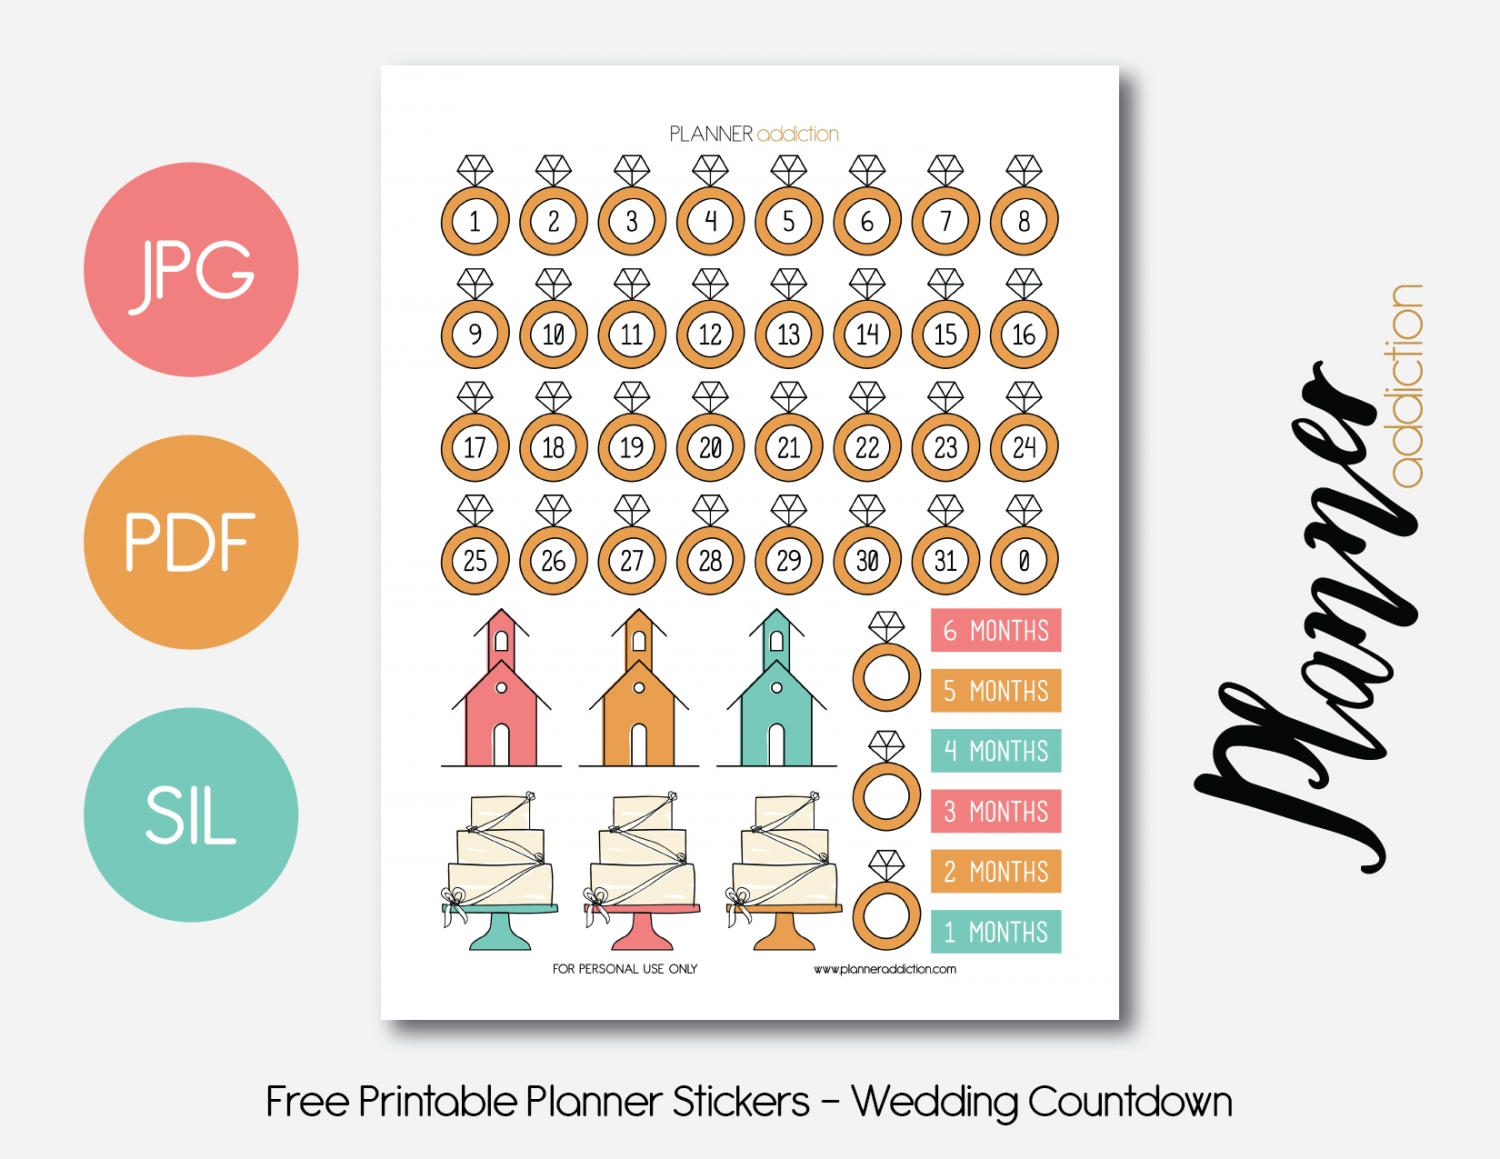 Free Printable Planner Stickers - Wedding Countdown (With